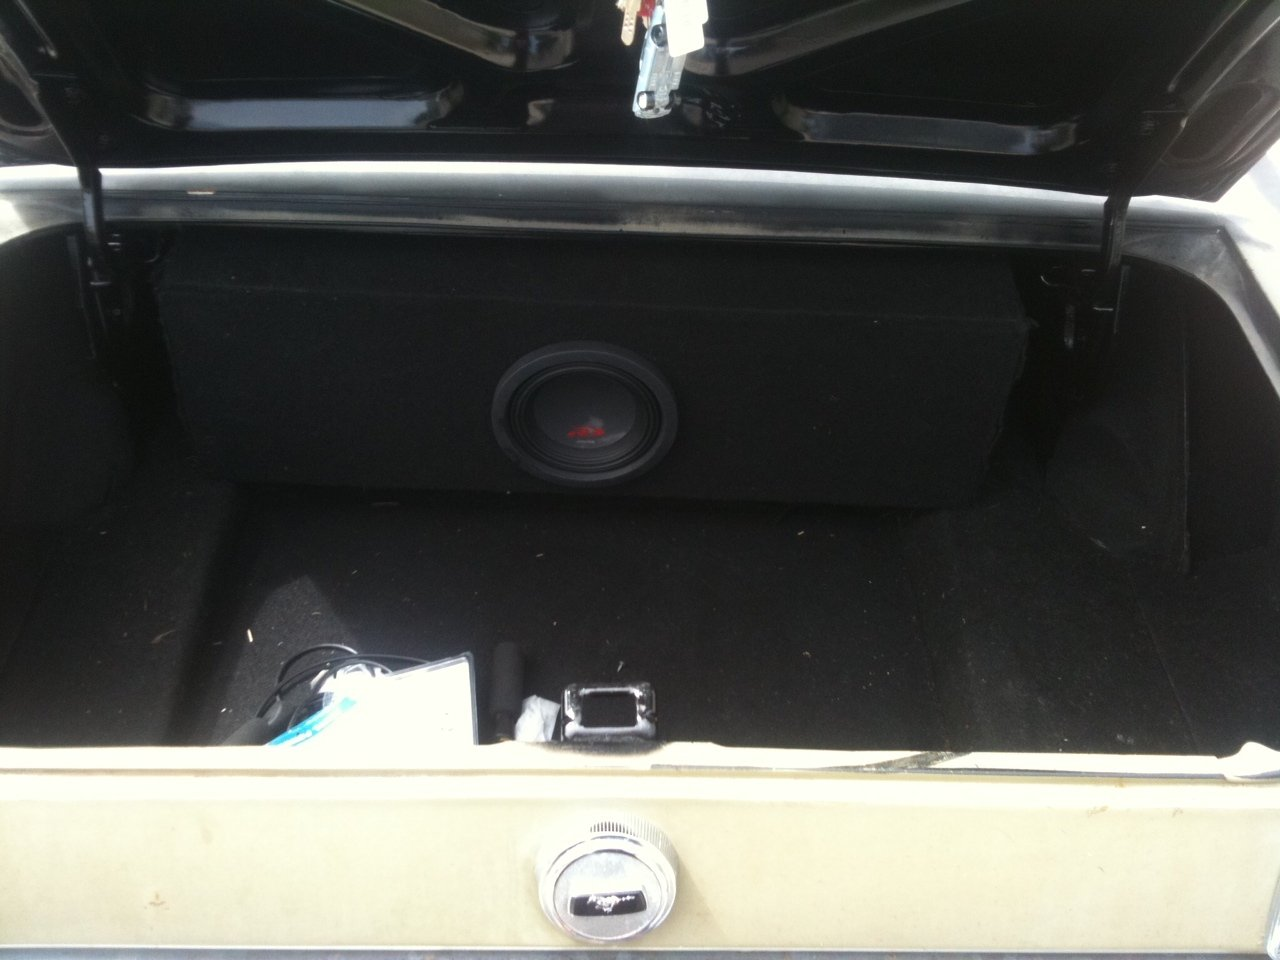 Sub Woofer in a 1967 Mustang Coupe - Any Helpful Hints